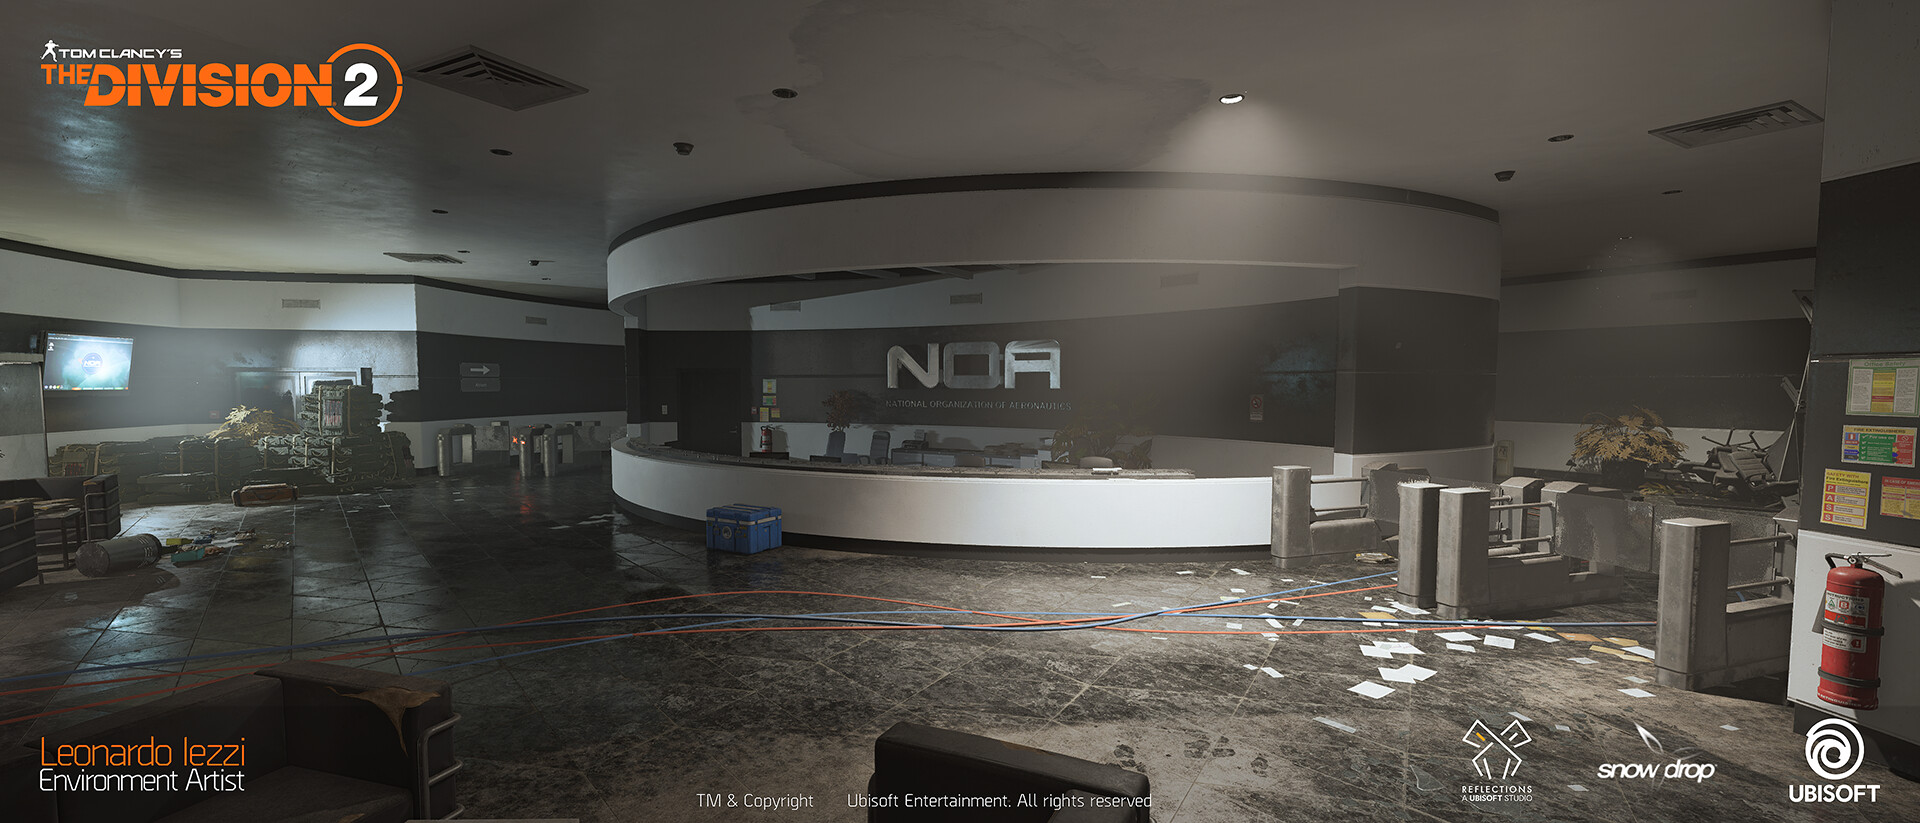 Leonardo iezzi leonardo iezzi the division 2 environment art 02 atrium 014 wide